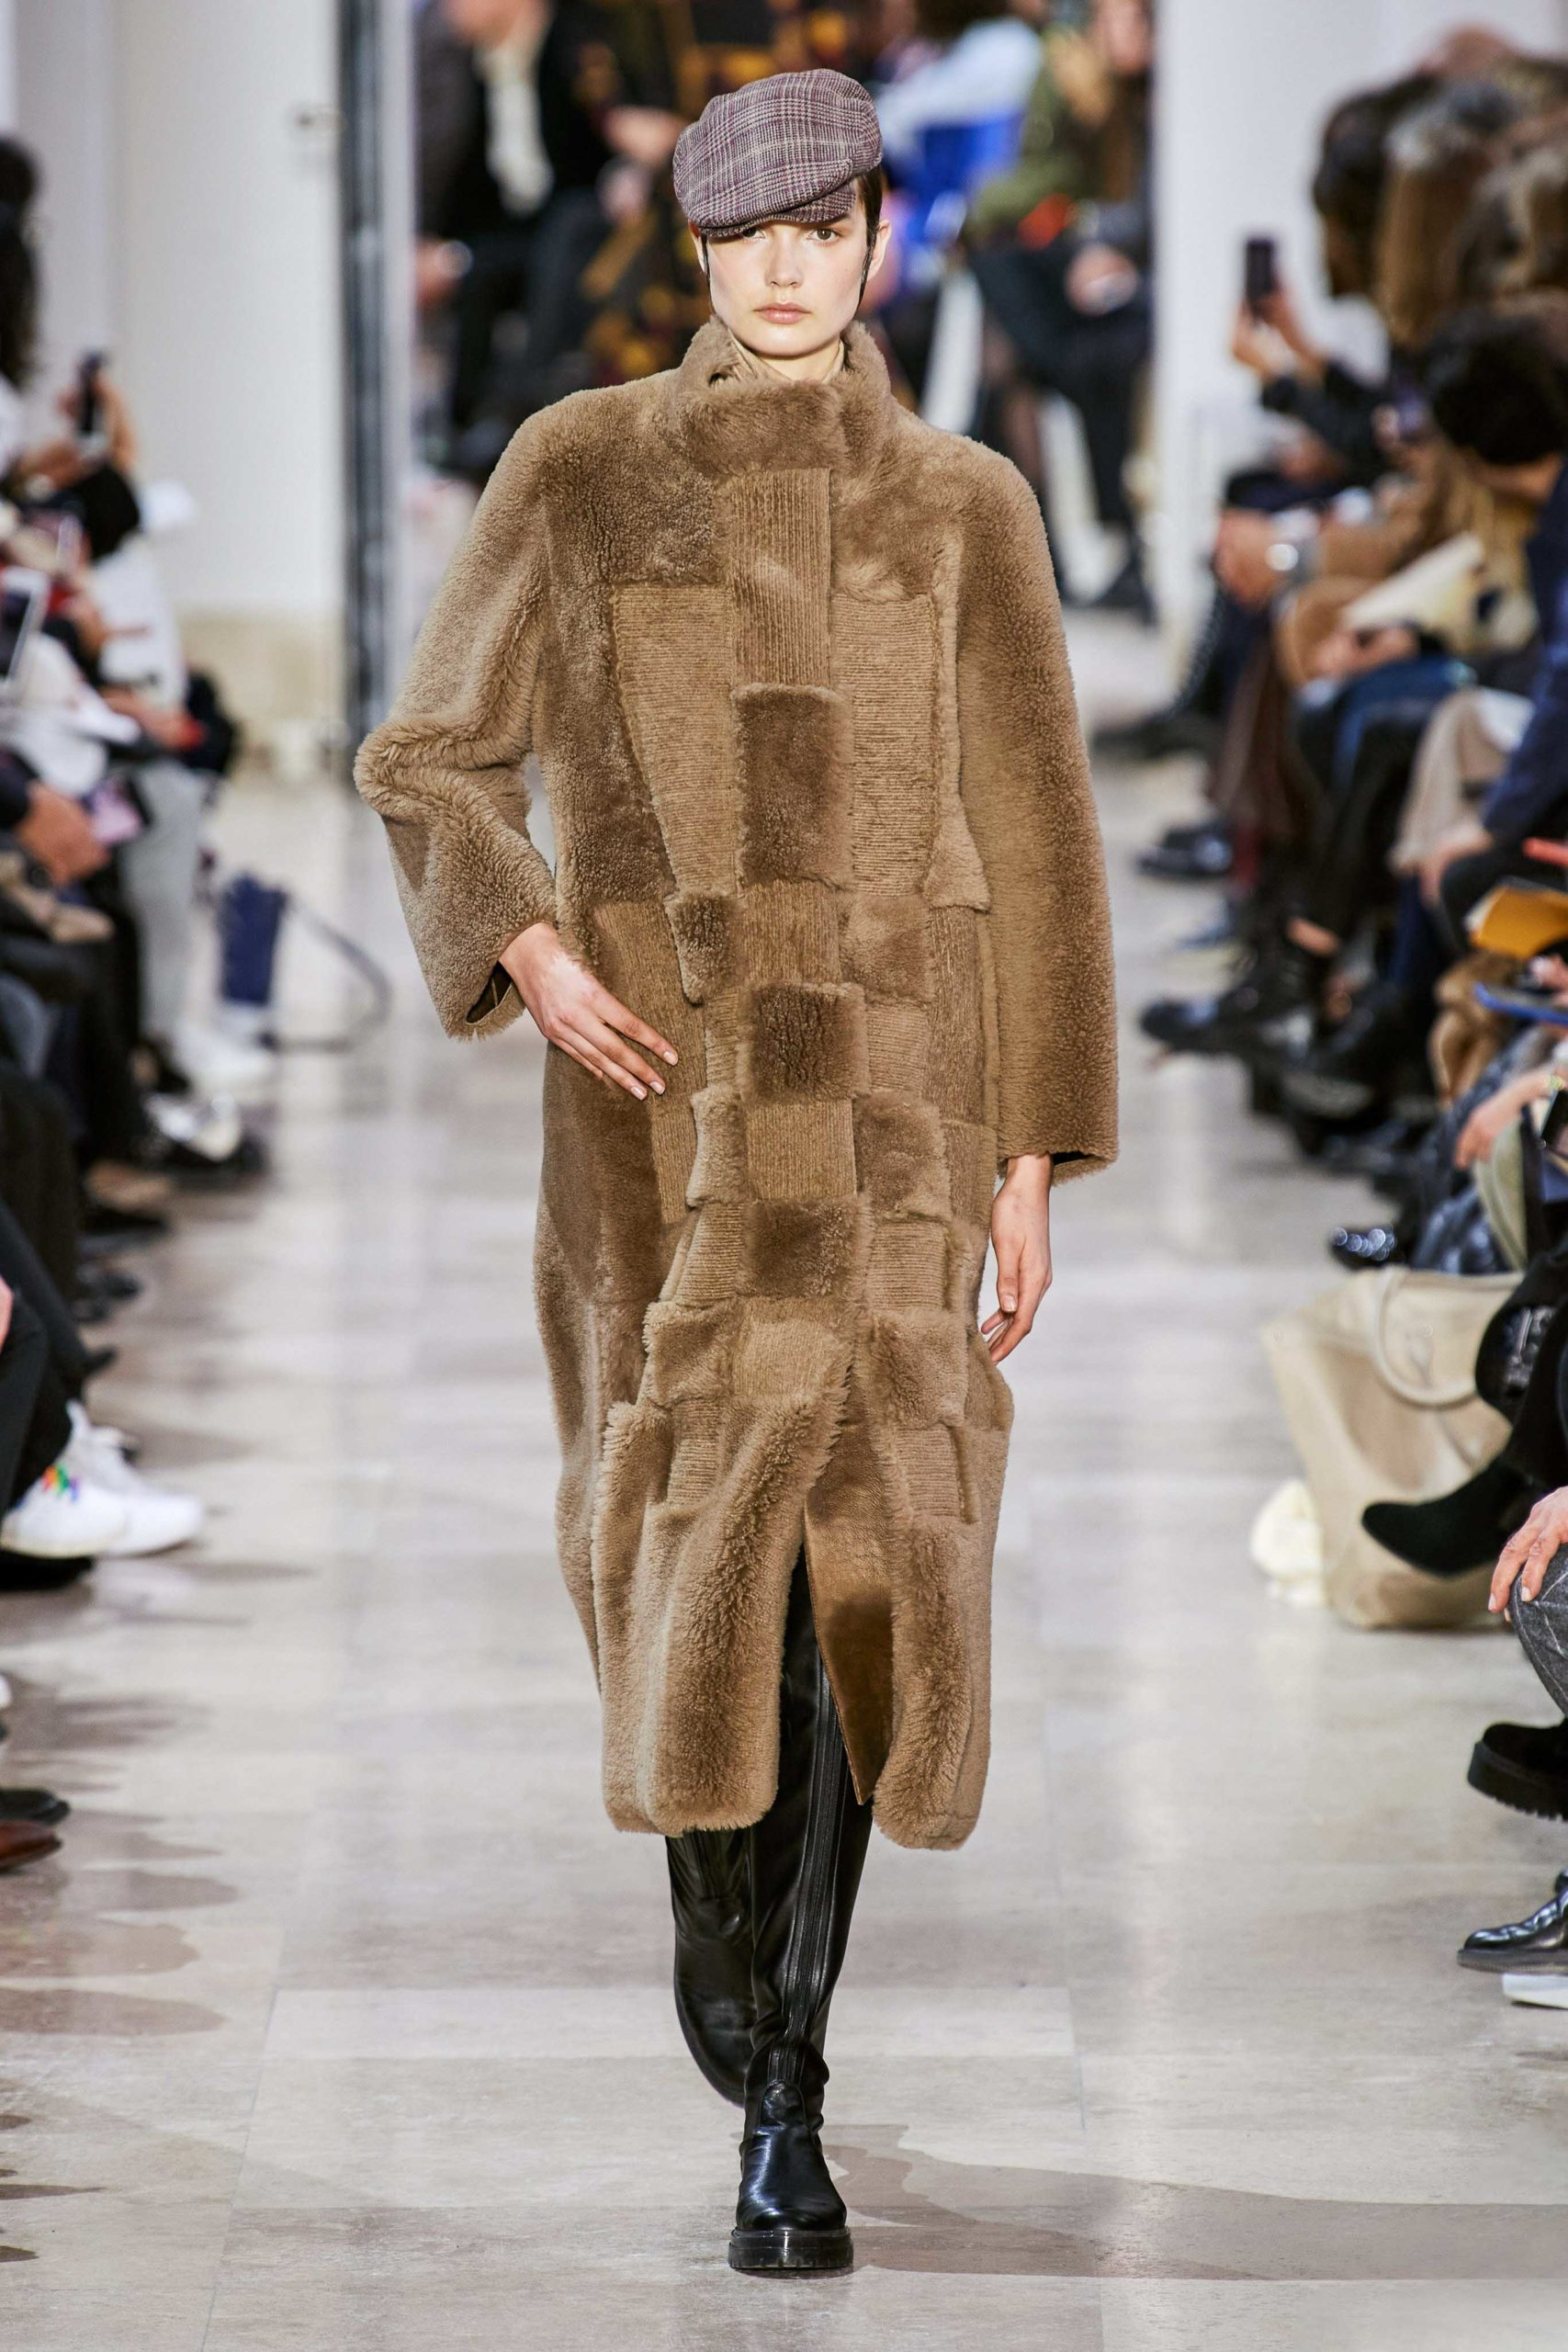 Akris Fall Winter 2020 trends runway coverage Ready To Wear Vogue shaggy